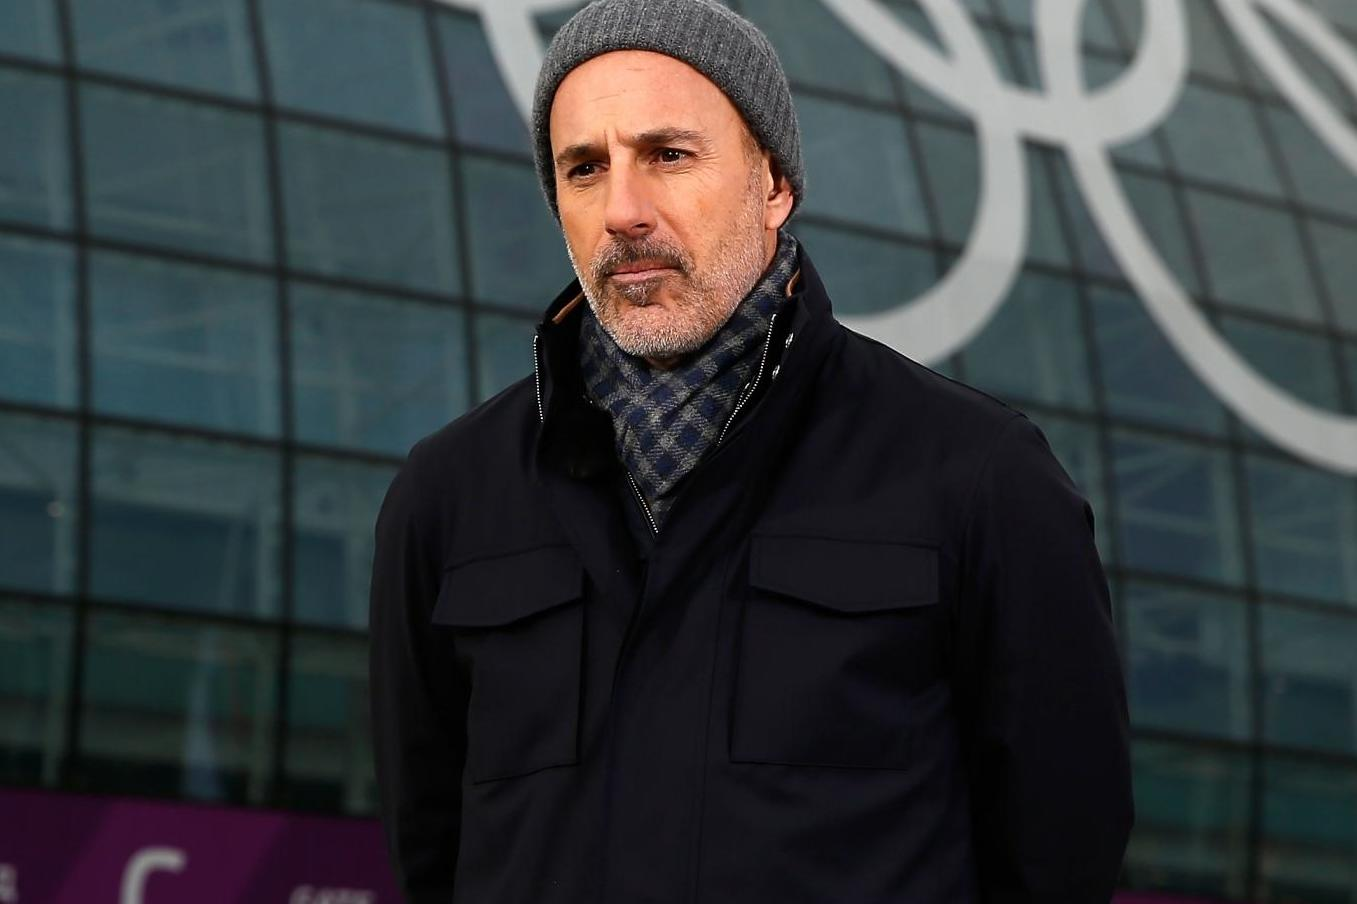 Matt Lauer's letter is going to make MeToo history for all the wrong reasons